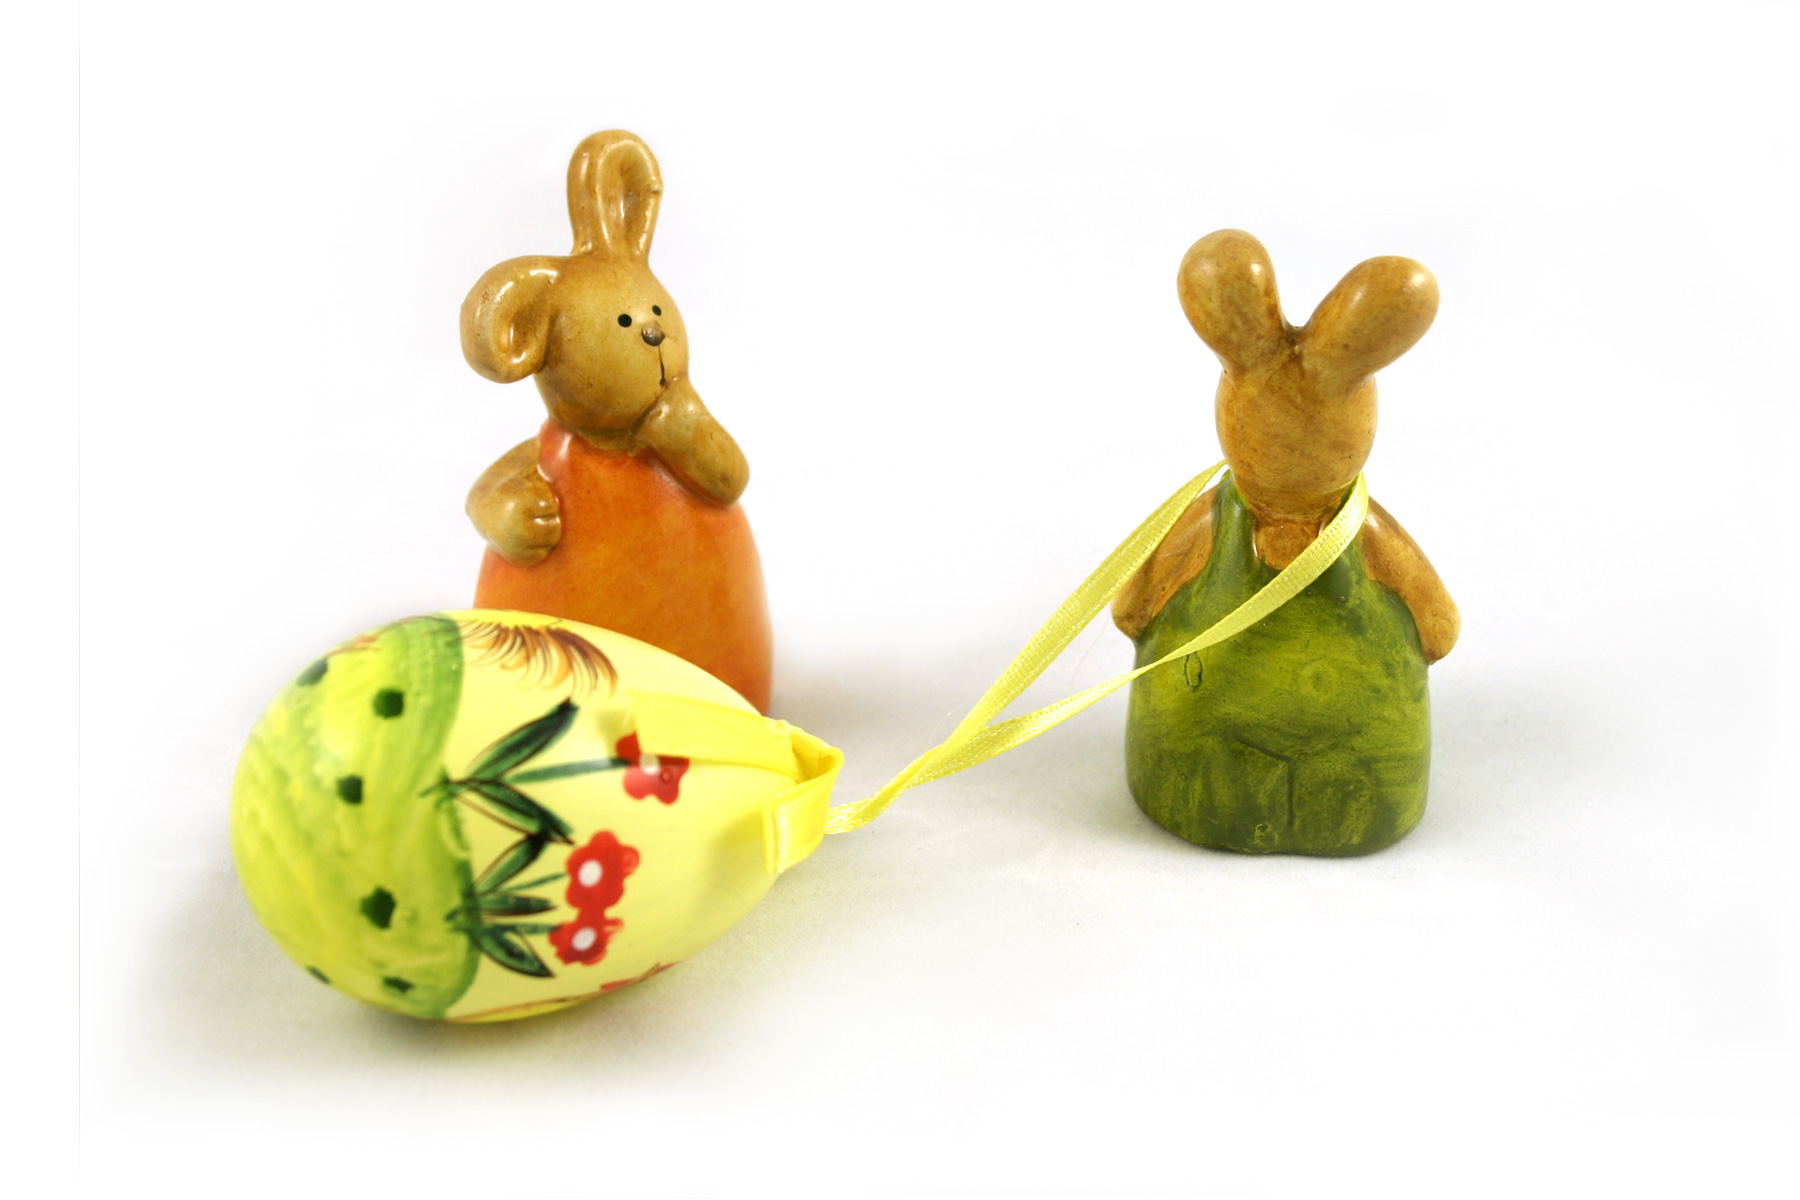 Easter rabbits - one dragging an egg photo